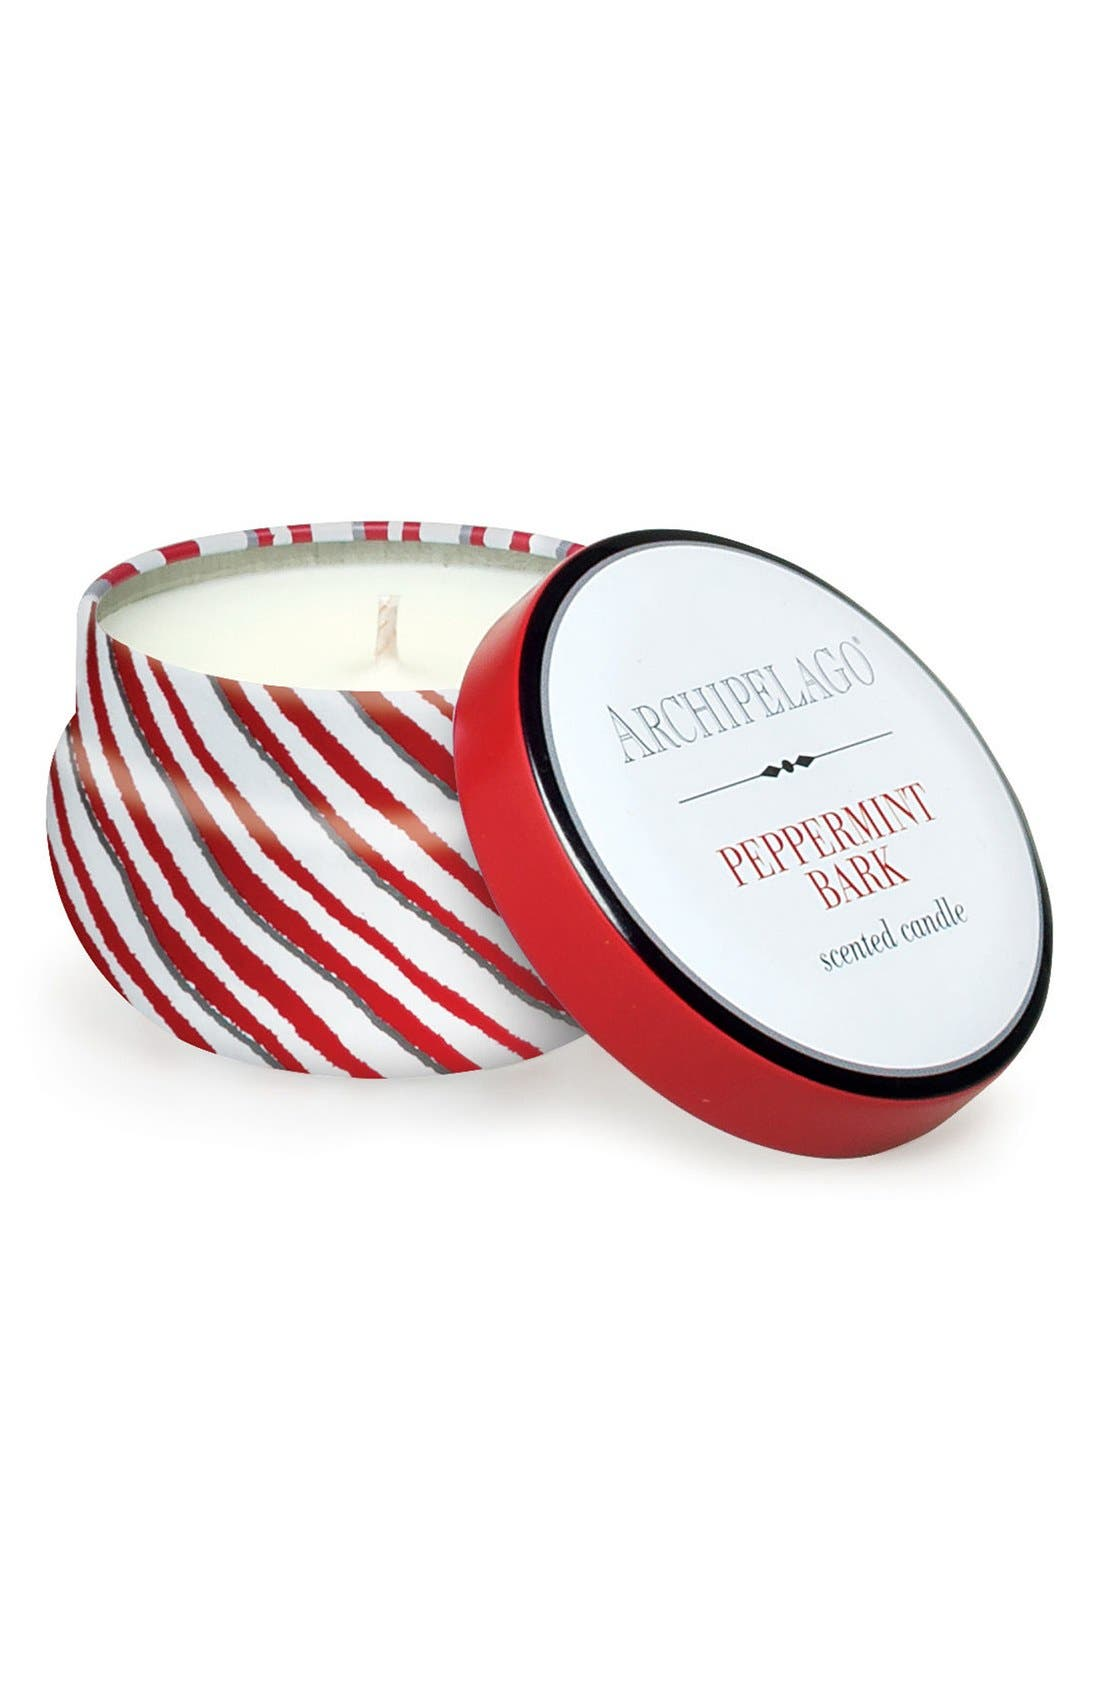 Peppermint Bark Scented Candle,                             Main thumbnail 1, color,                             600